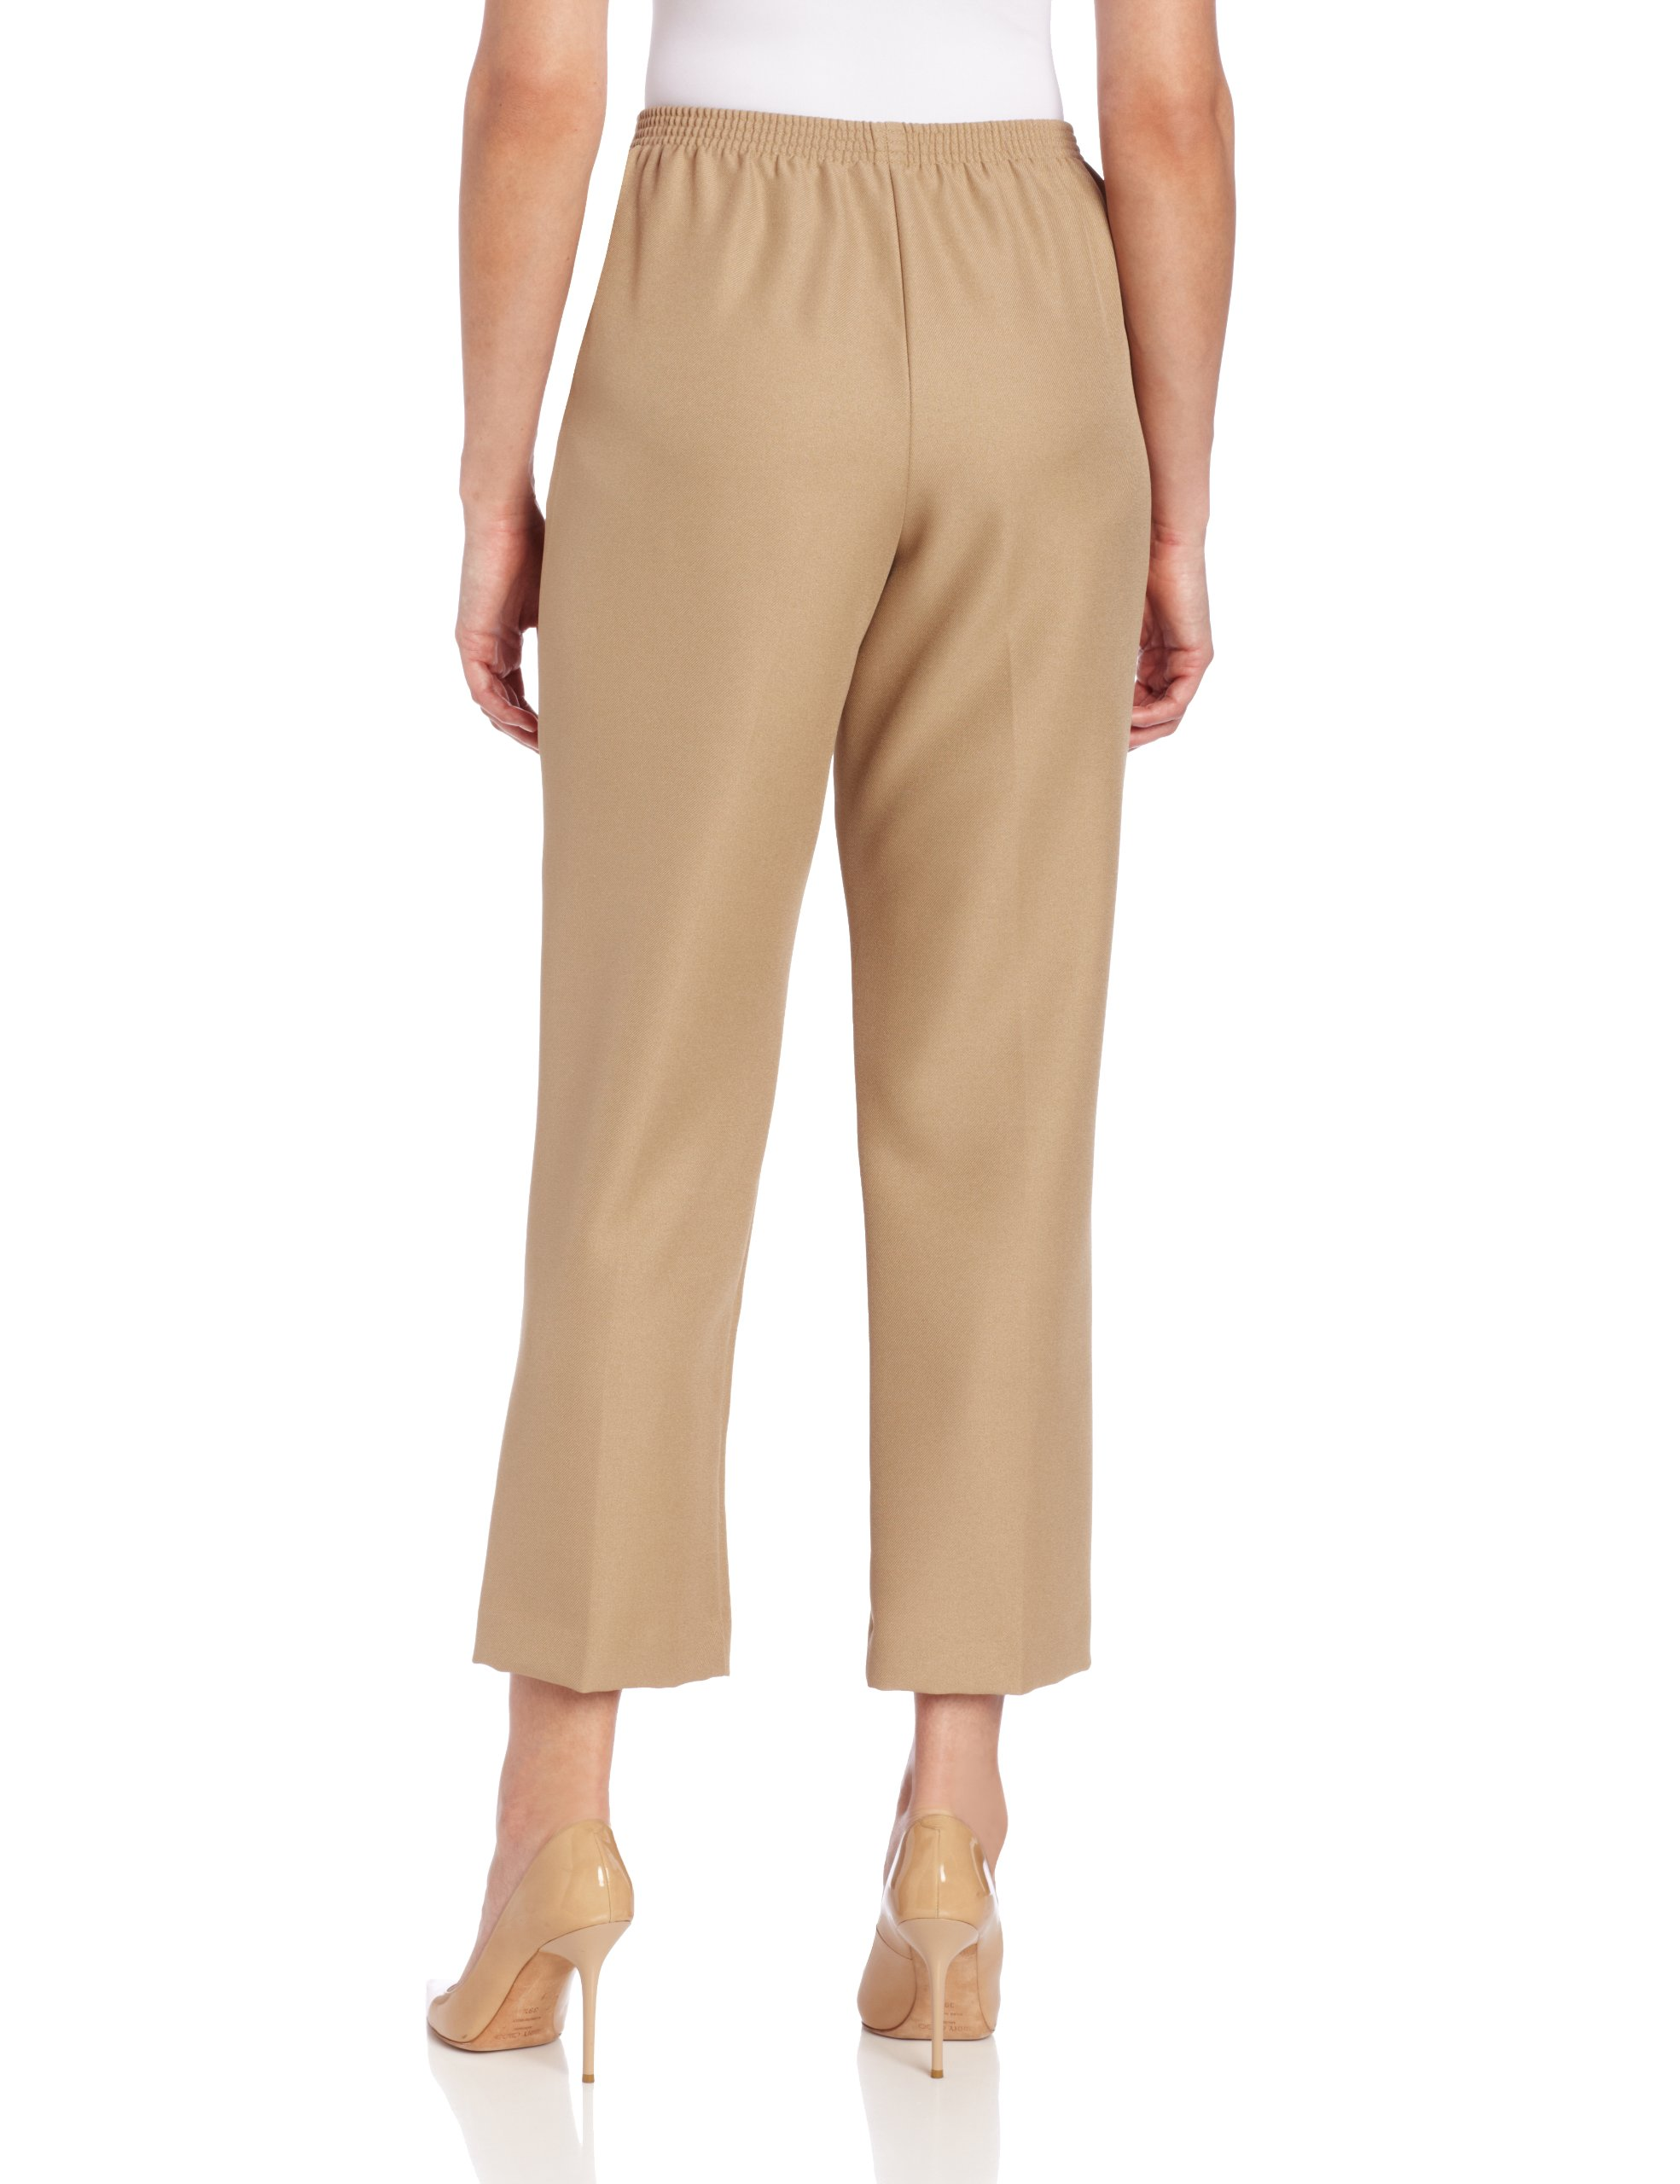 Alfred Dunner Women's Short Pant,Tan,18 by Alfred Dunner (Image #2)